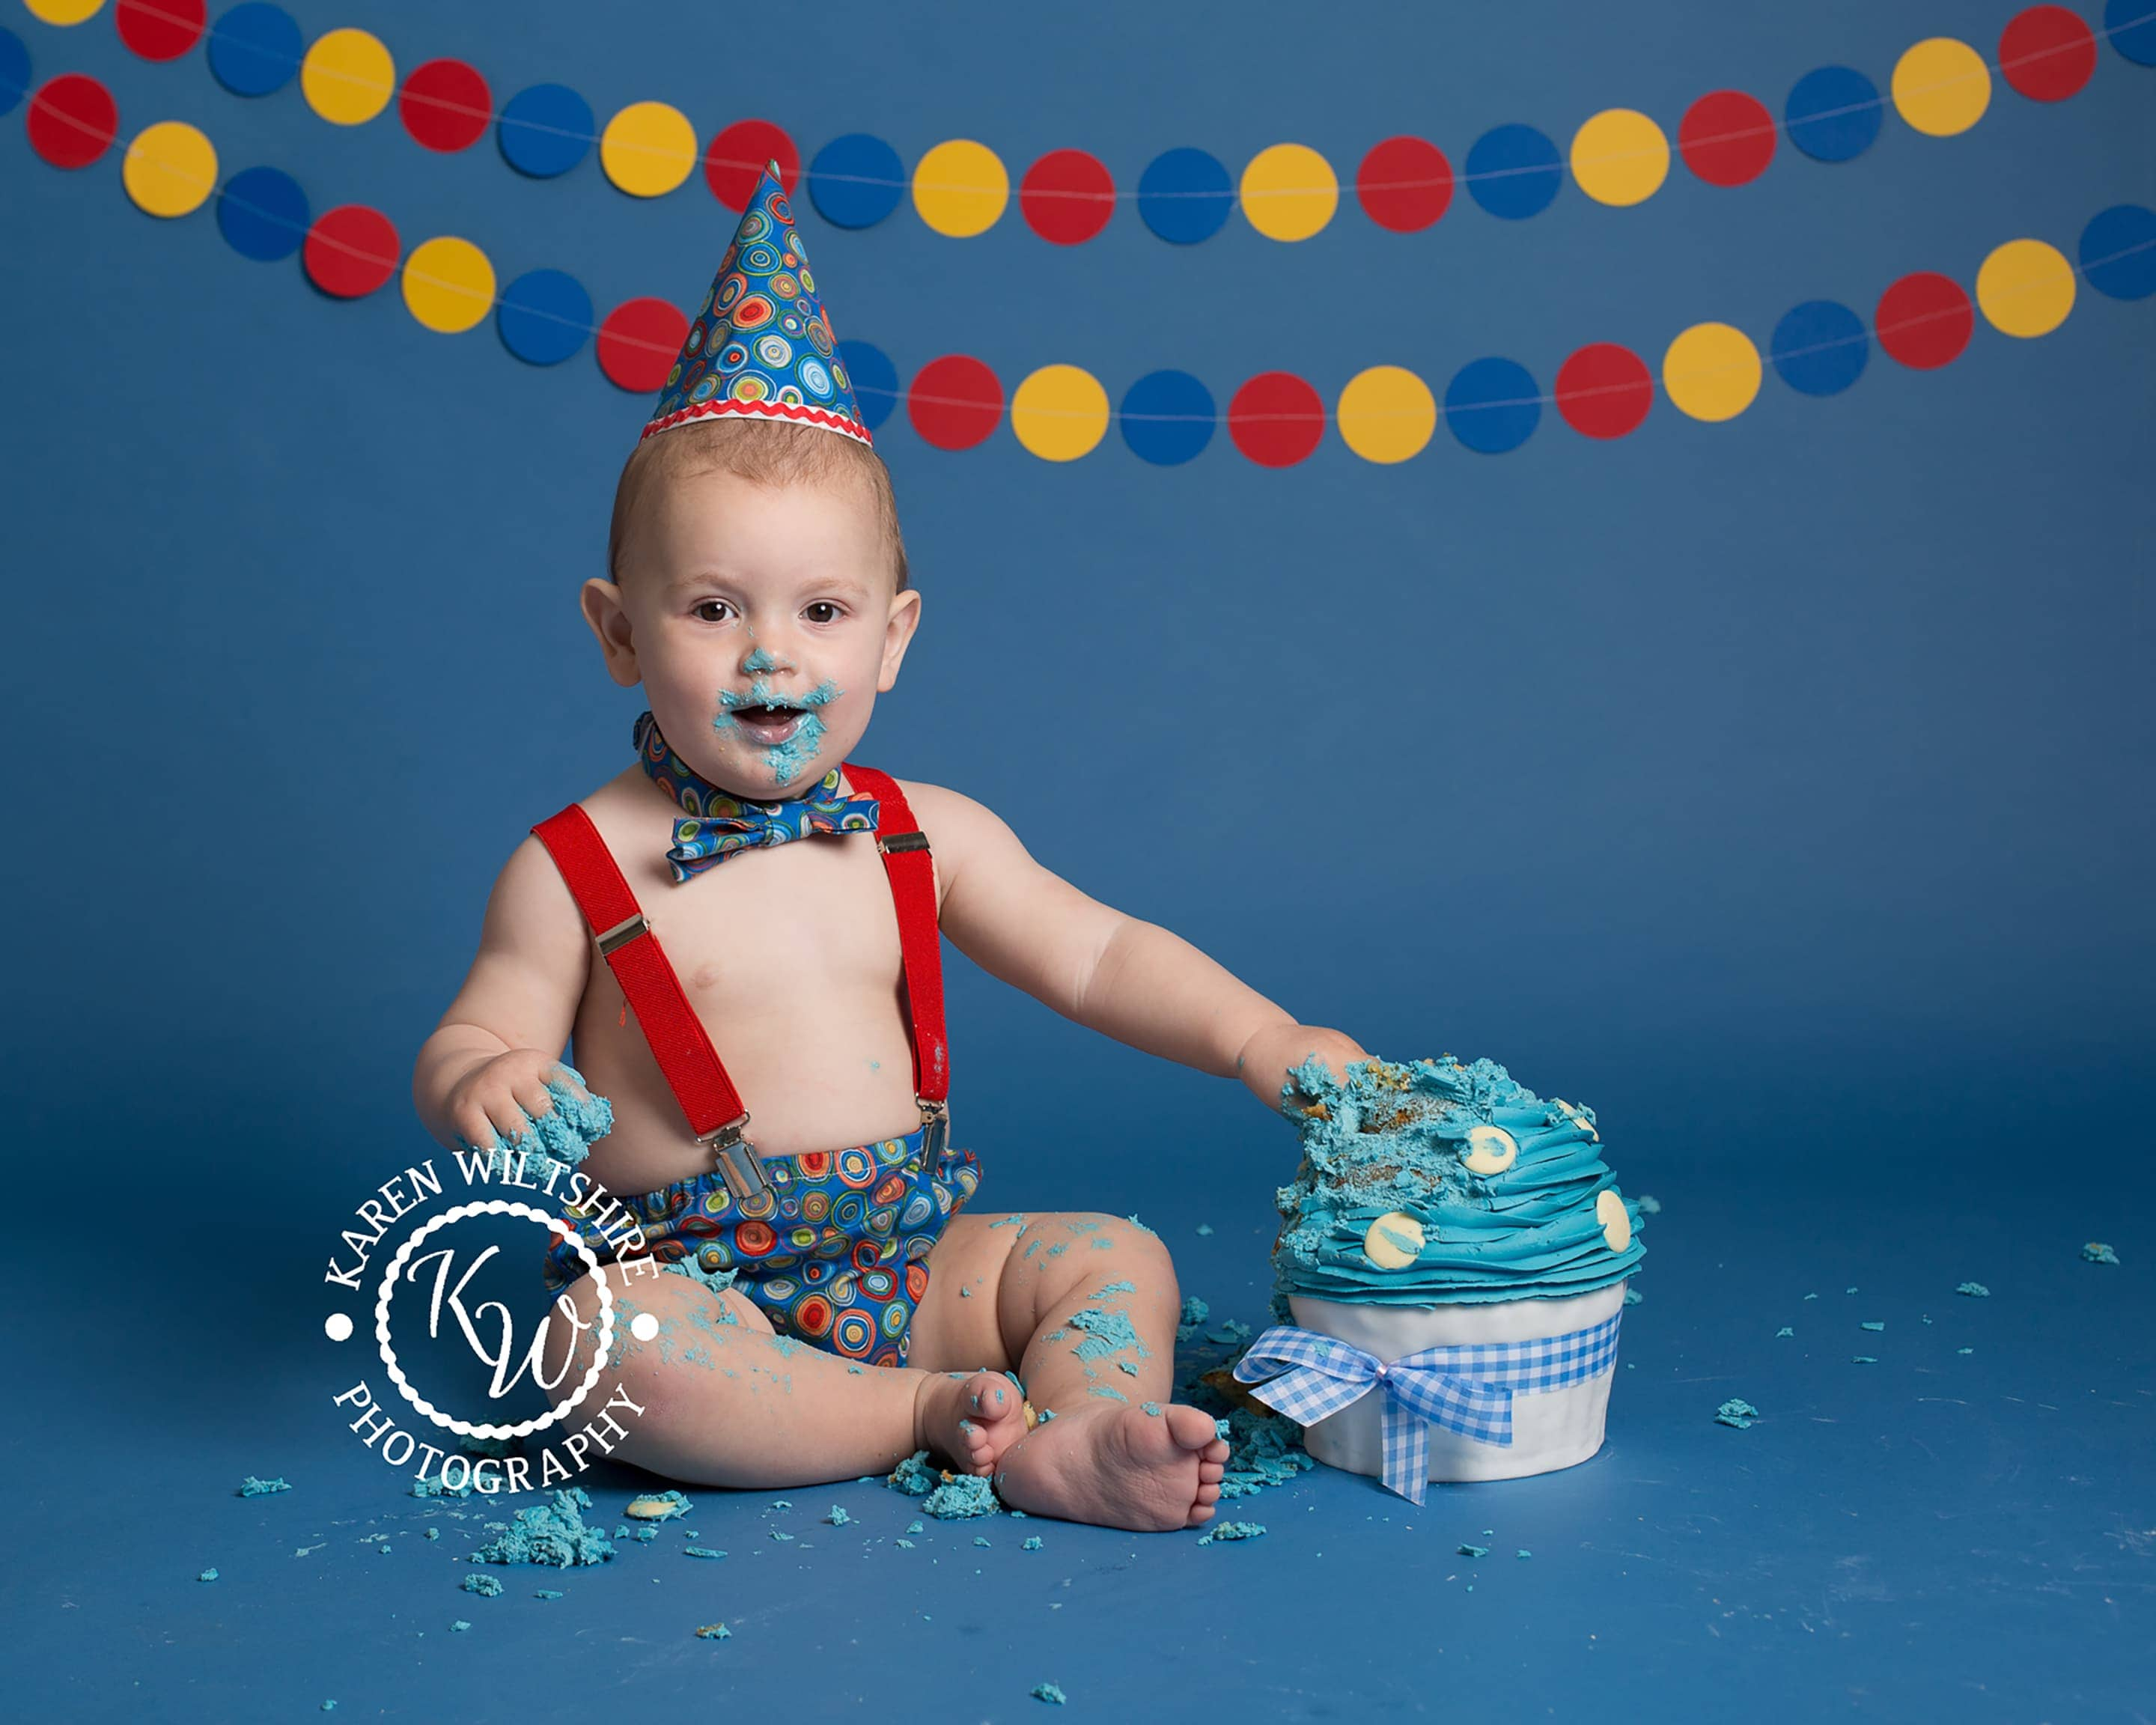 Boys smash the cake session on a blue background